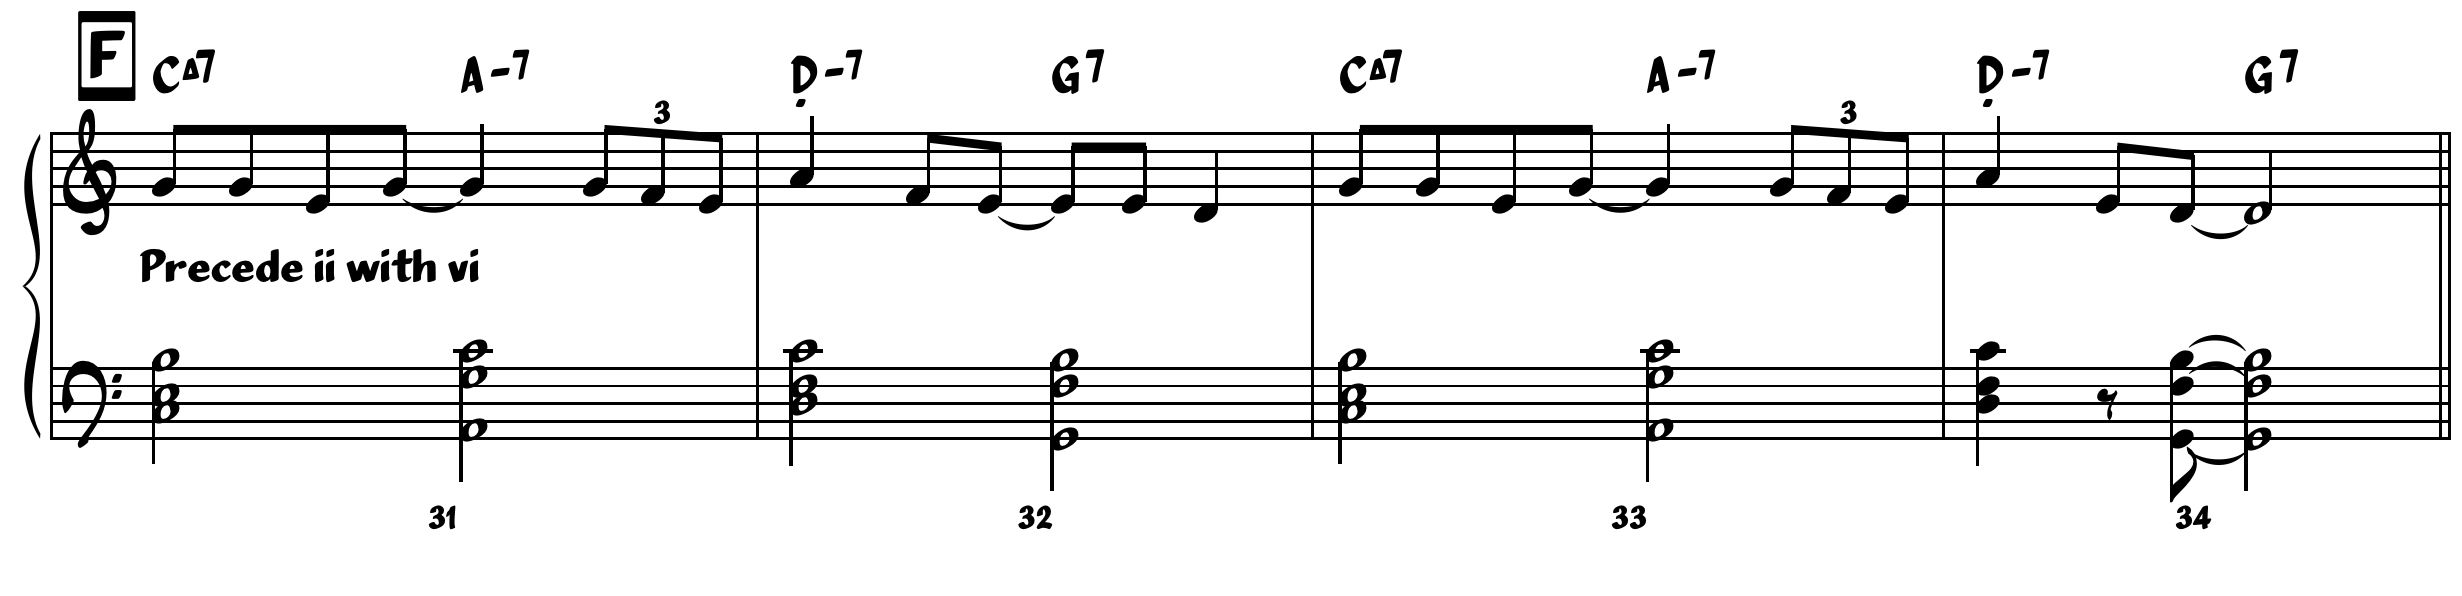 Home  Piano Chords  D7 Chord on Piano Look at the image to see how to play D7 in the root position on piano You should basically play the notes D above middle